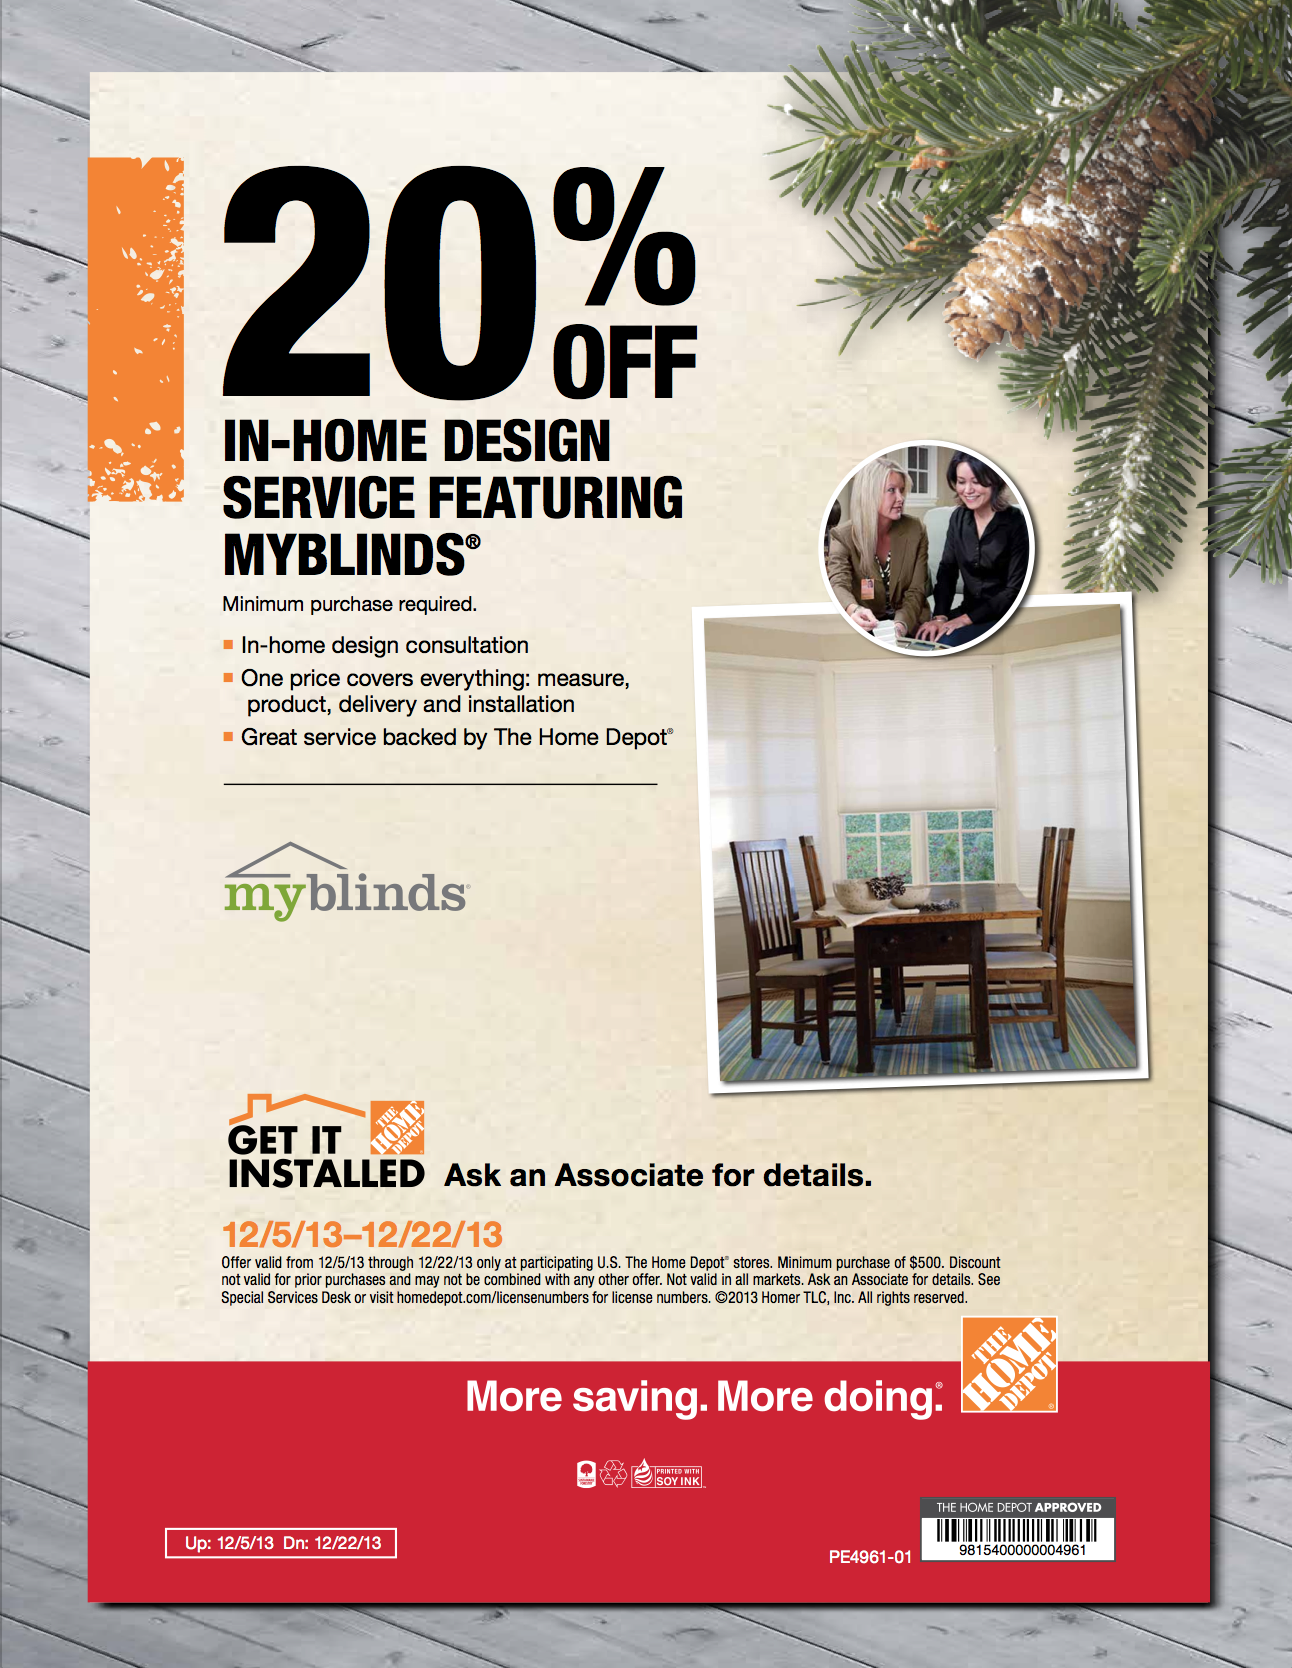 Home Depot Timeline Great Time To Purchase Blinds And Shades Up 20 Off Myblinds With In